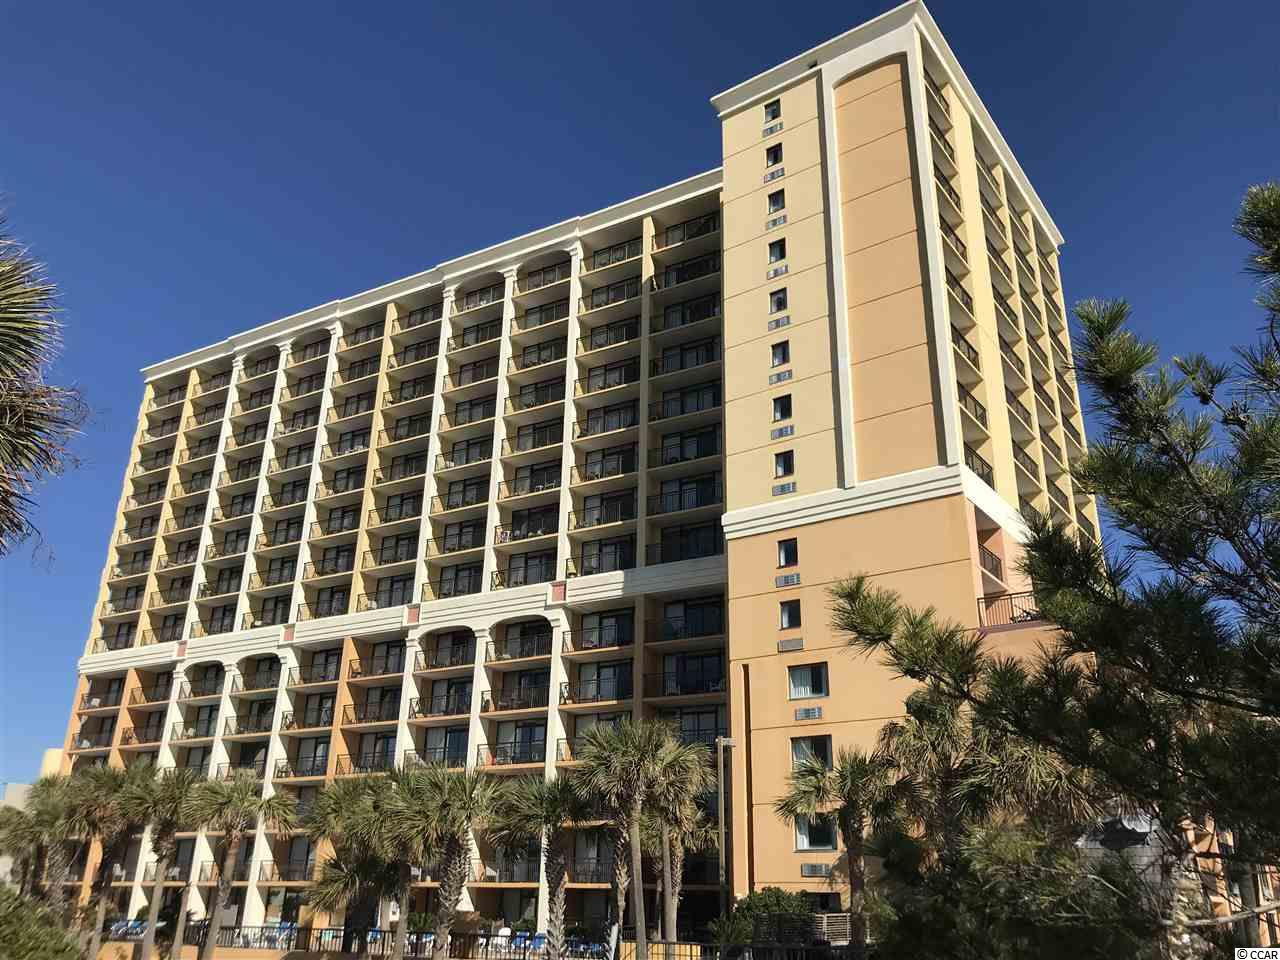 Caravelle Resort 6900 N Ocean Blvd. Myrtle Beach